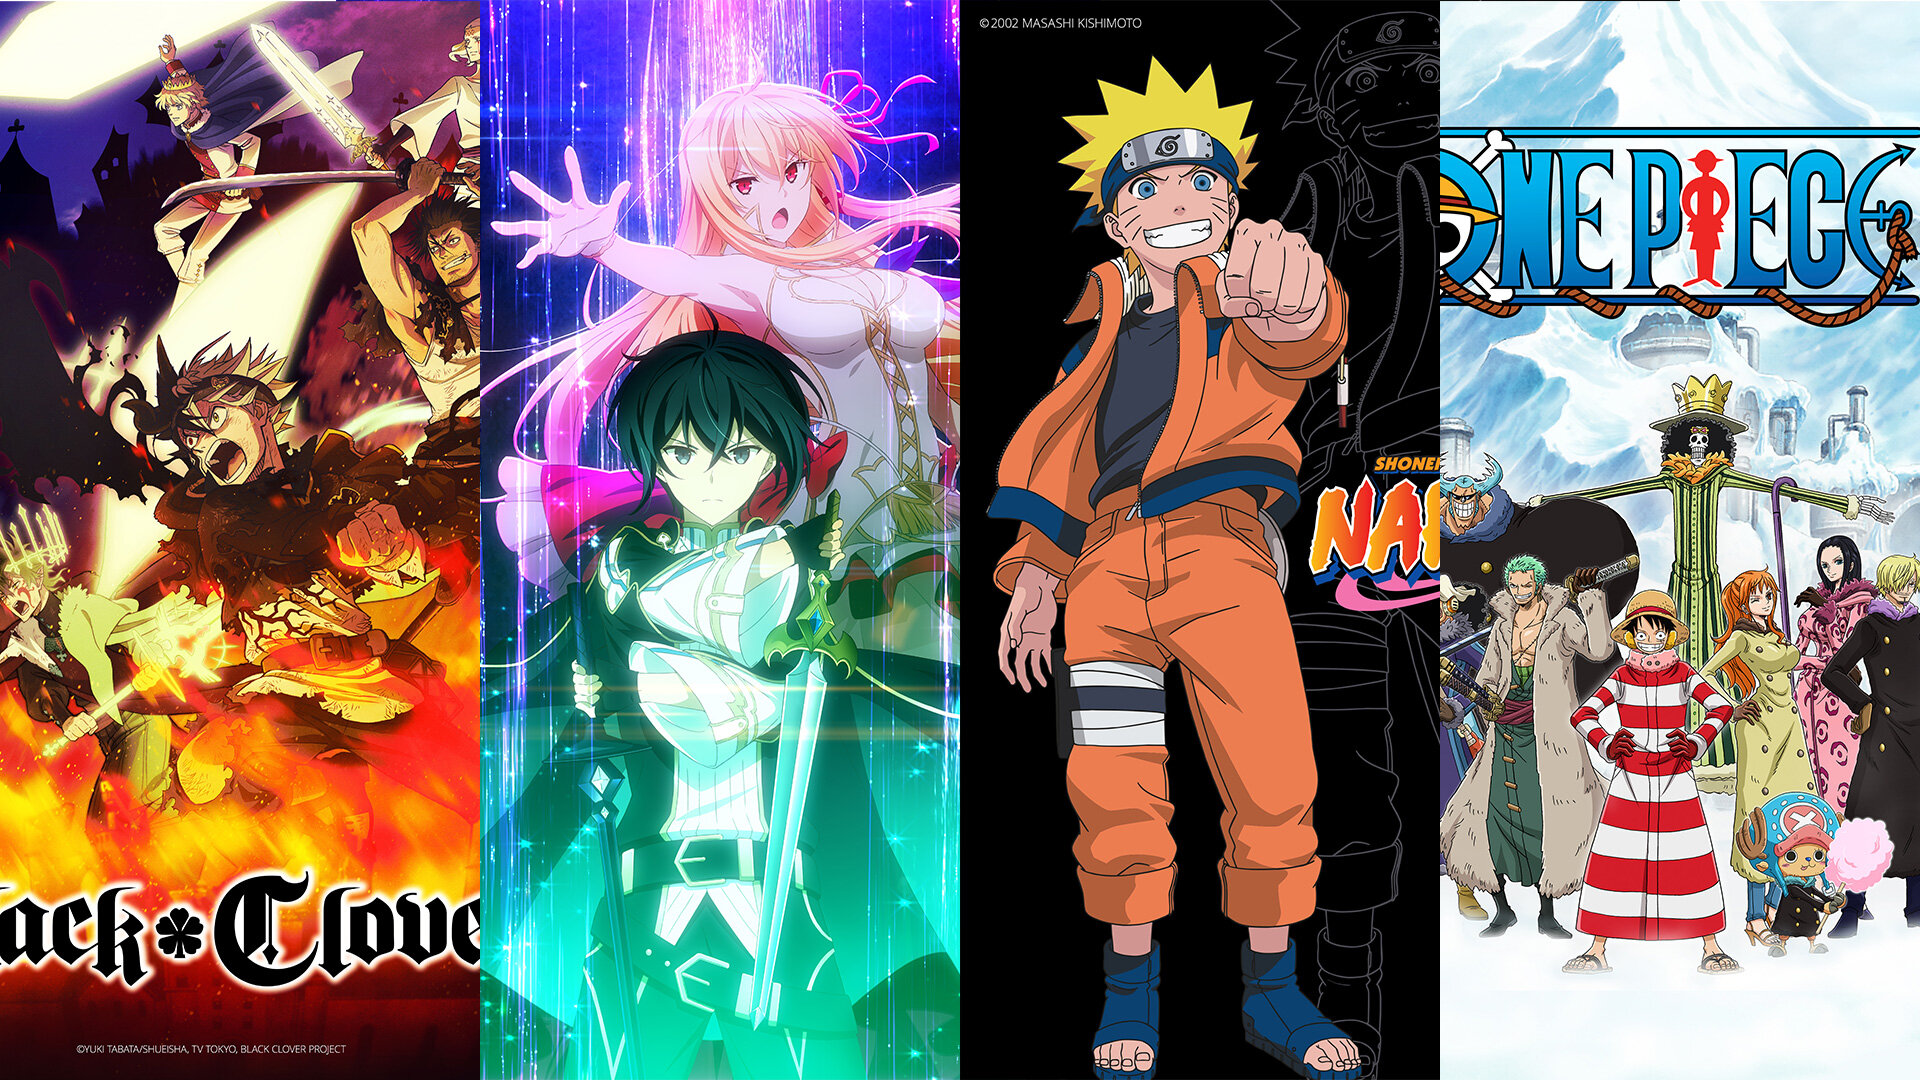 Some Funimation anime.